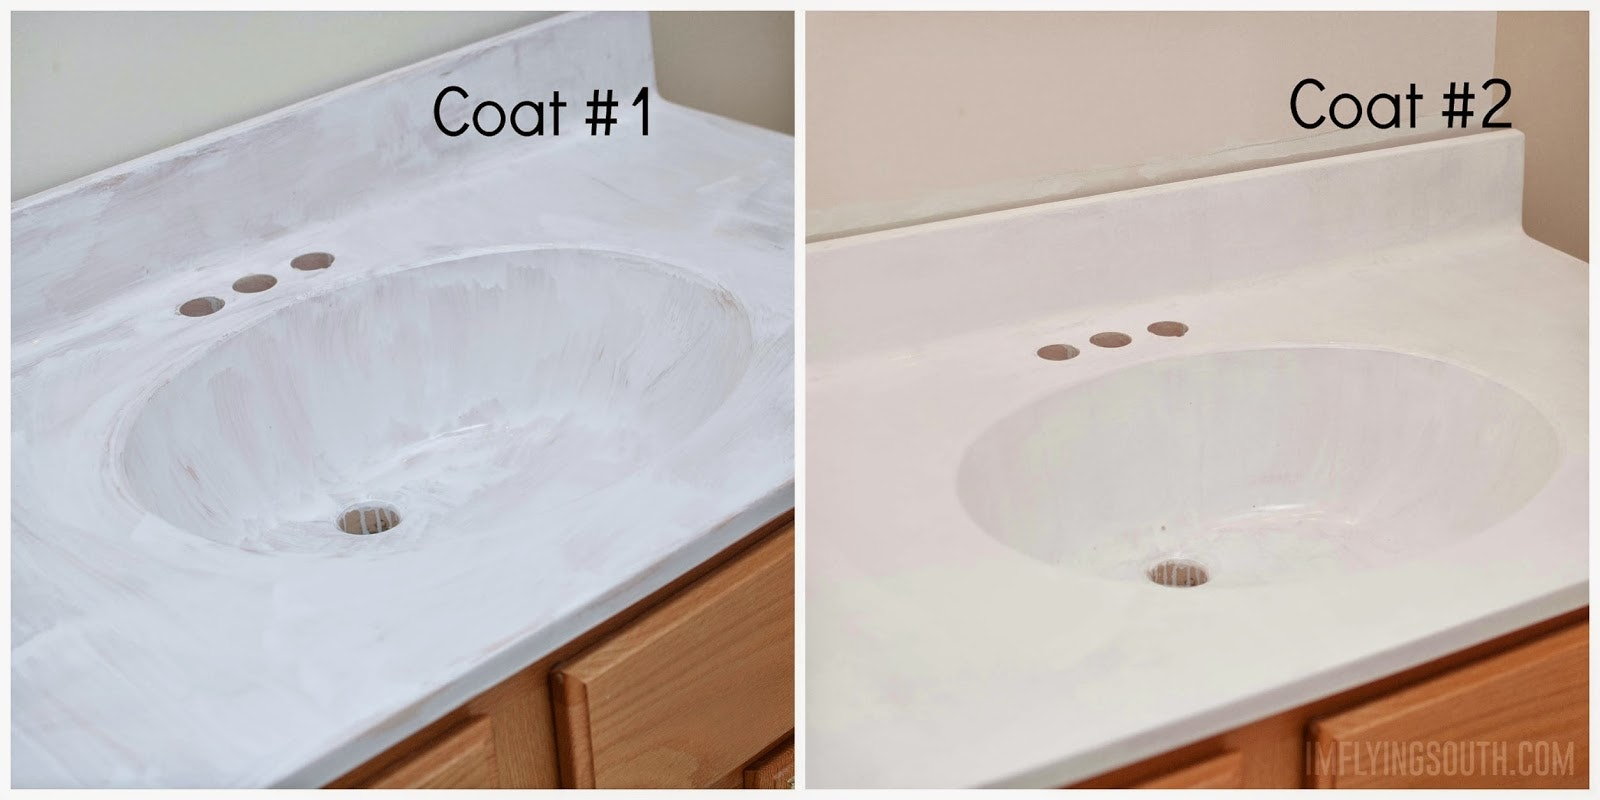 Merveilleux Epoxy Paint For Bathtub Painted Bathroom Sink And Countertop Process  Intended For Sizing 1600 X 800